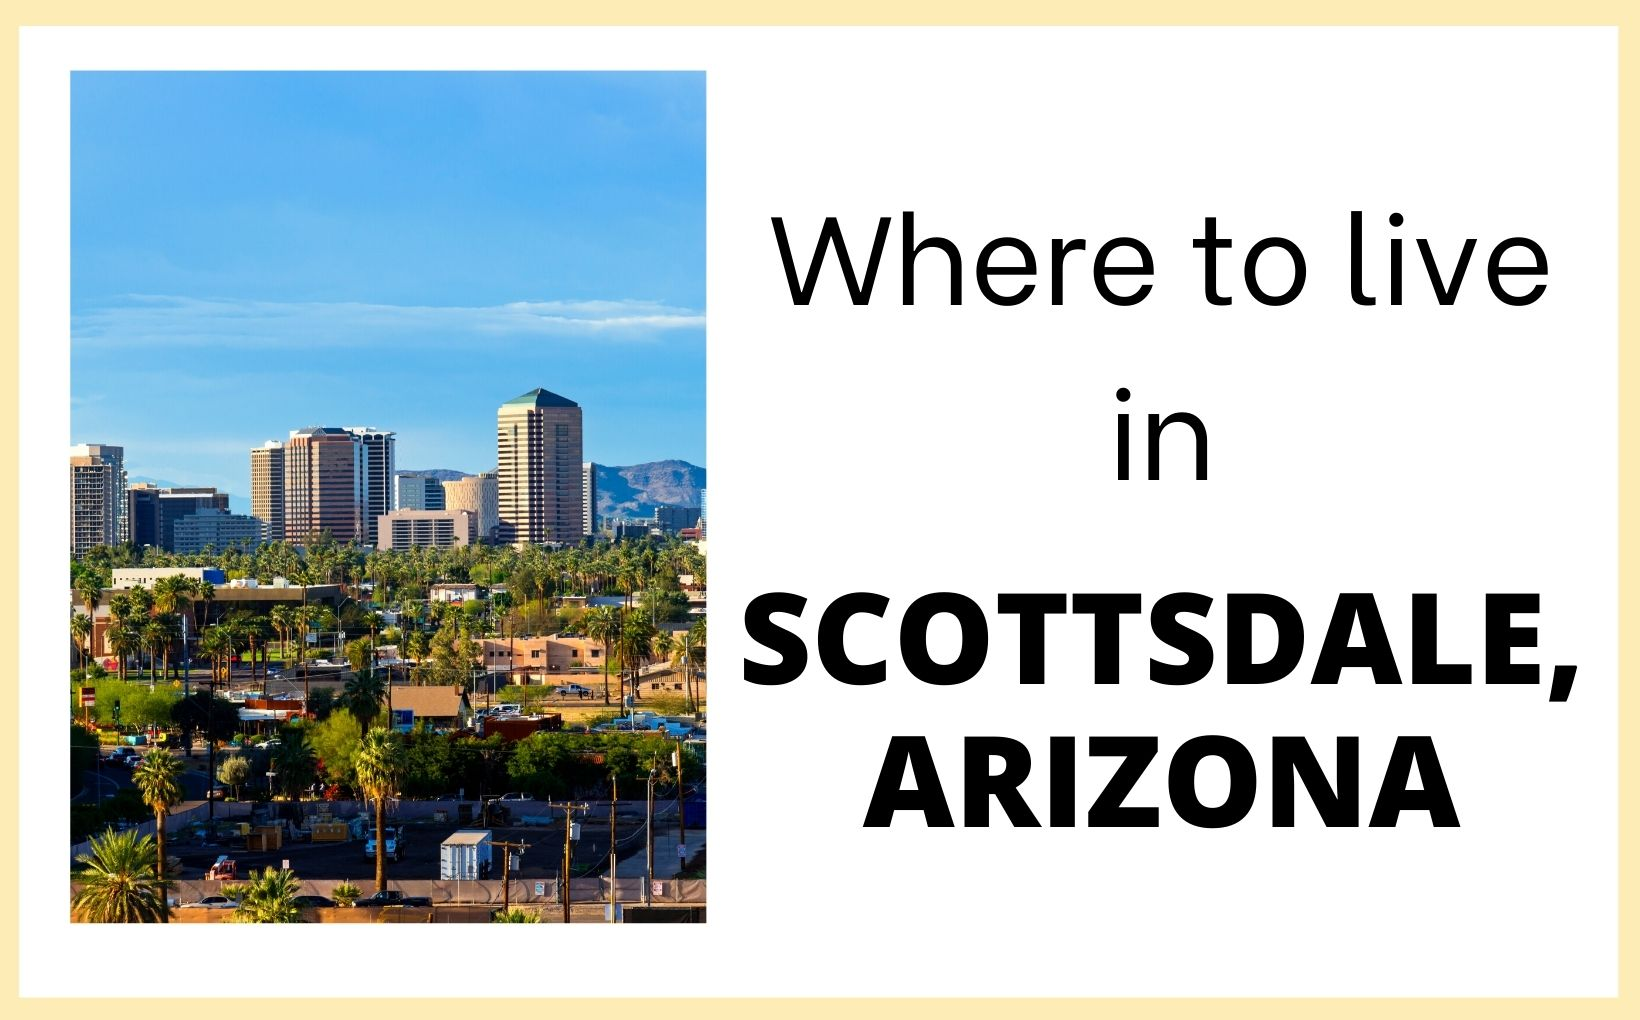 Where to live in Scottsdale, Arizona 5 Areas in Scottsdale to live in feature image